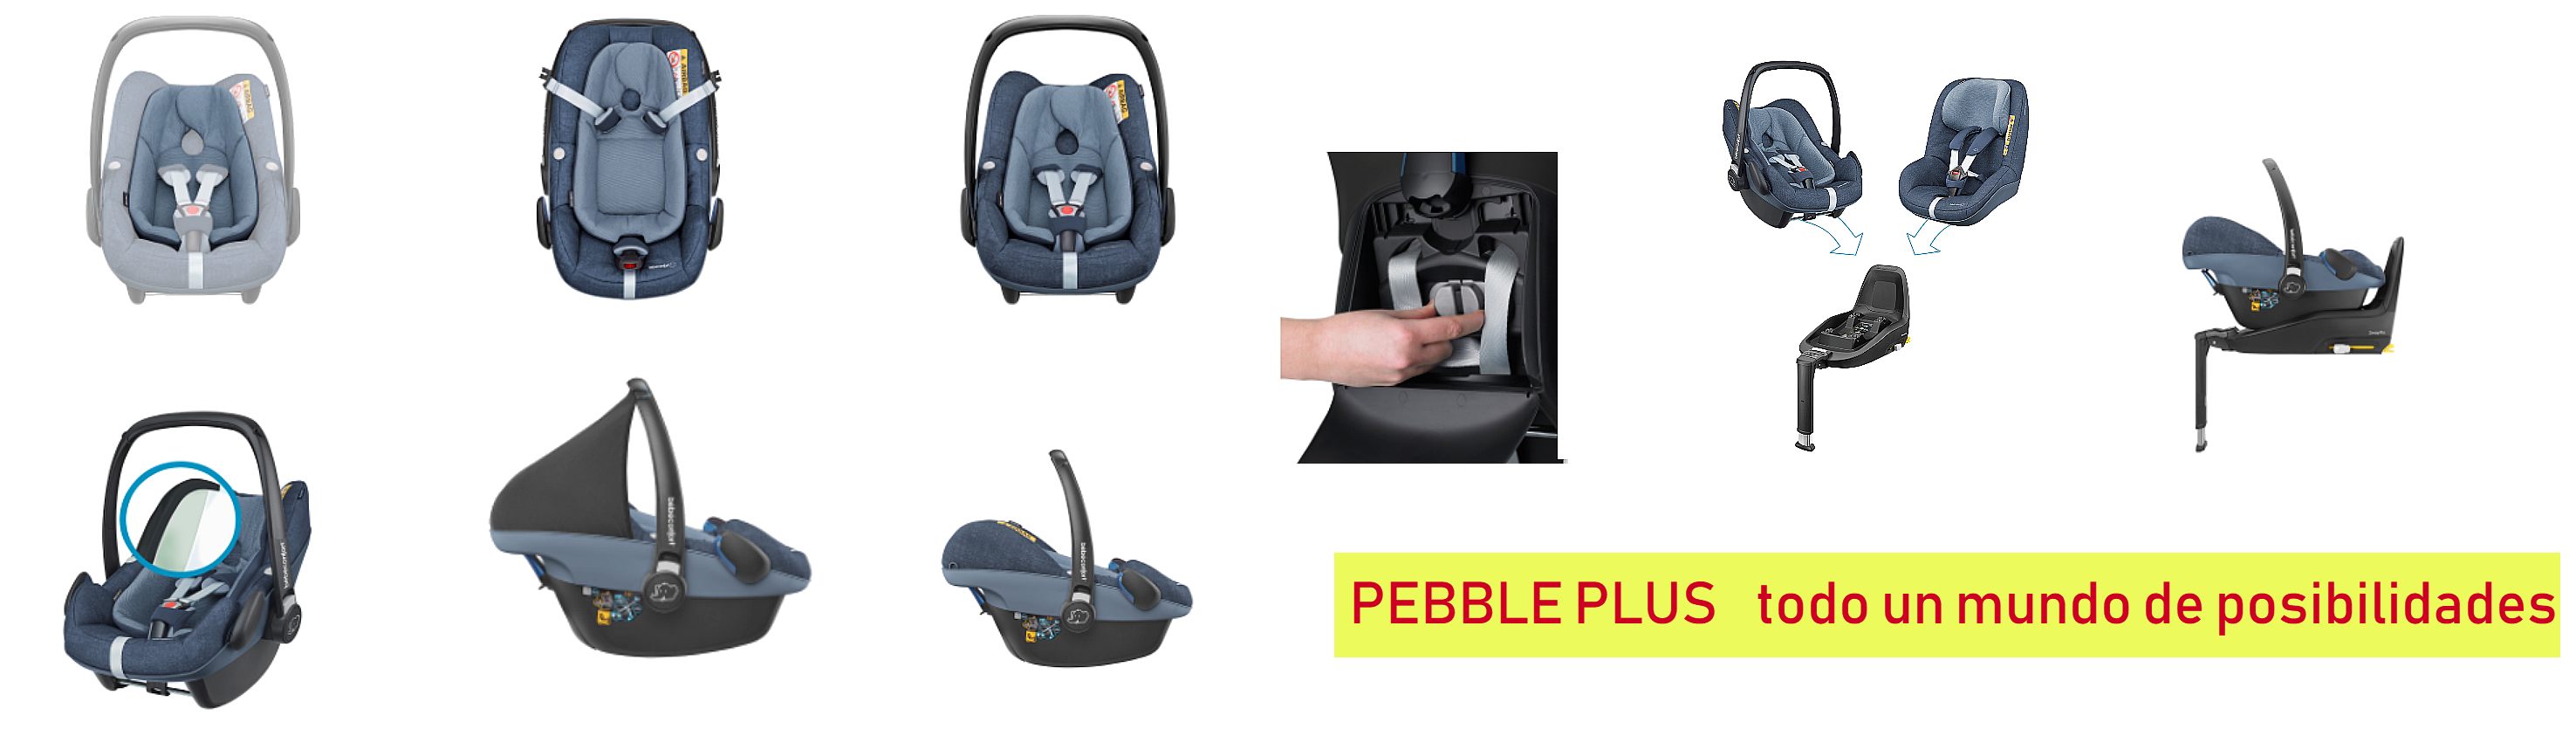 PEBBLE PLUS DE BEBE CONFORT